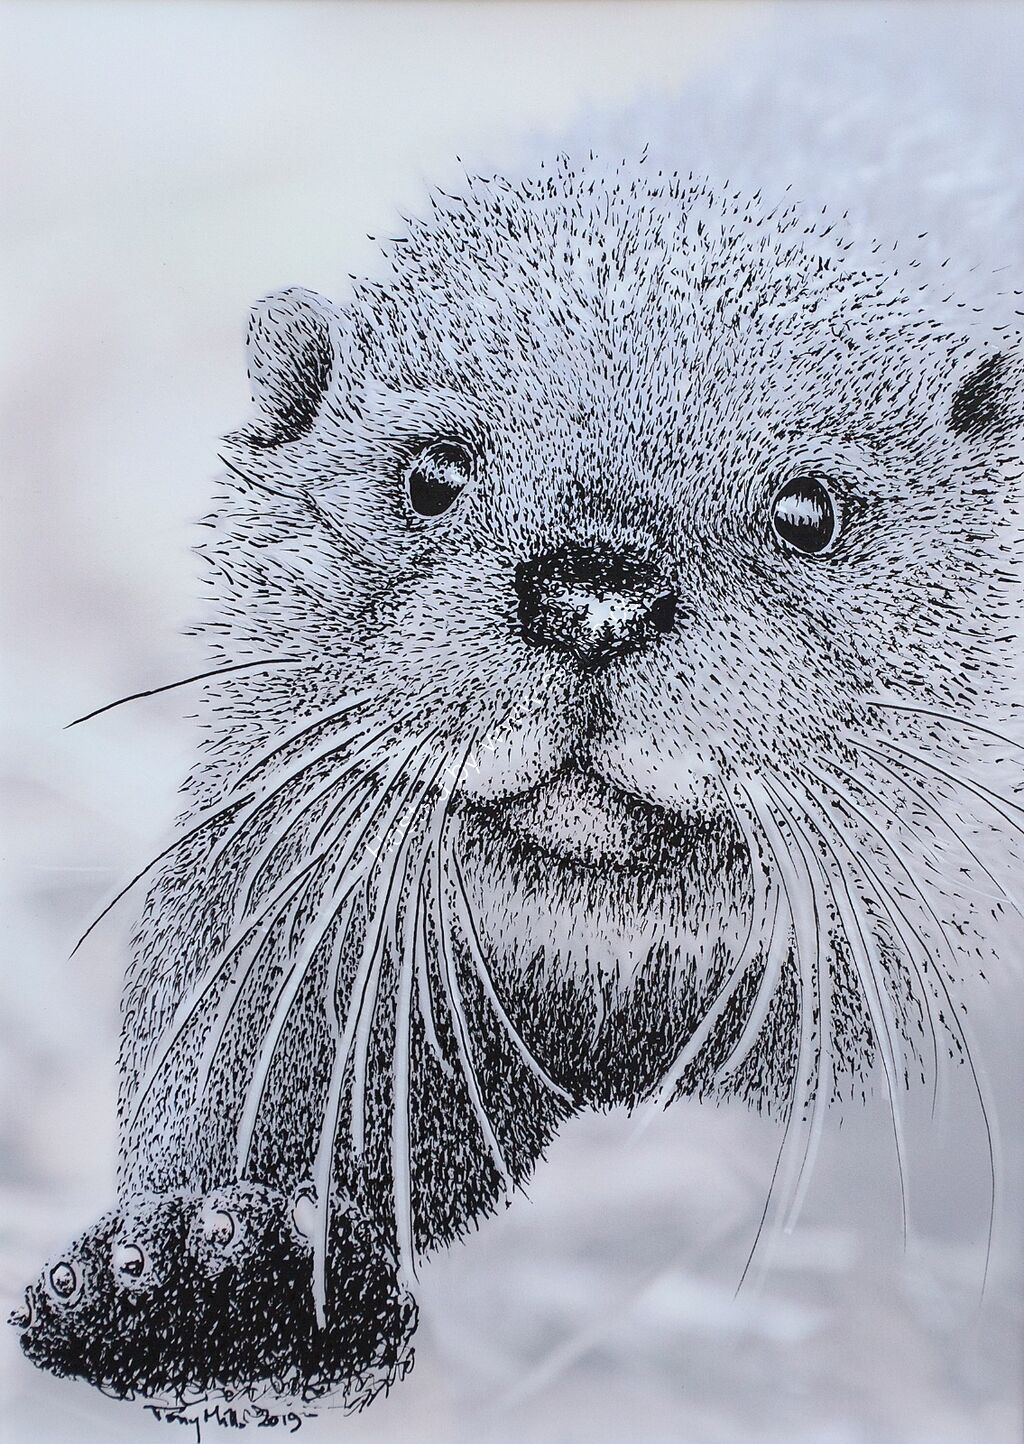 The Inqusitive Otter #4